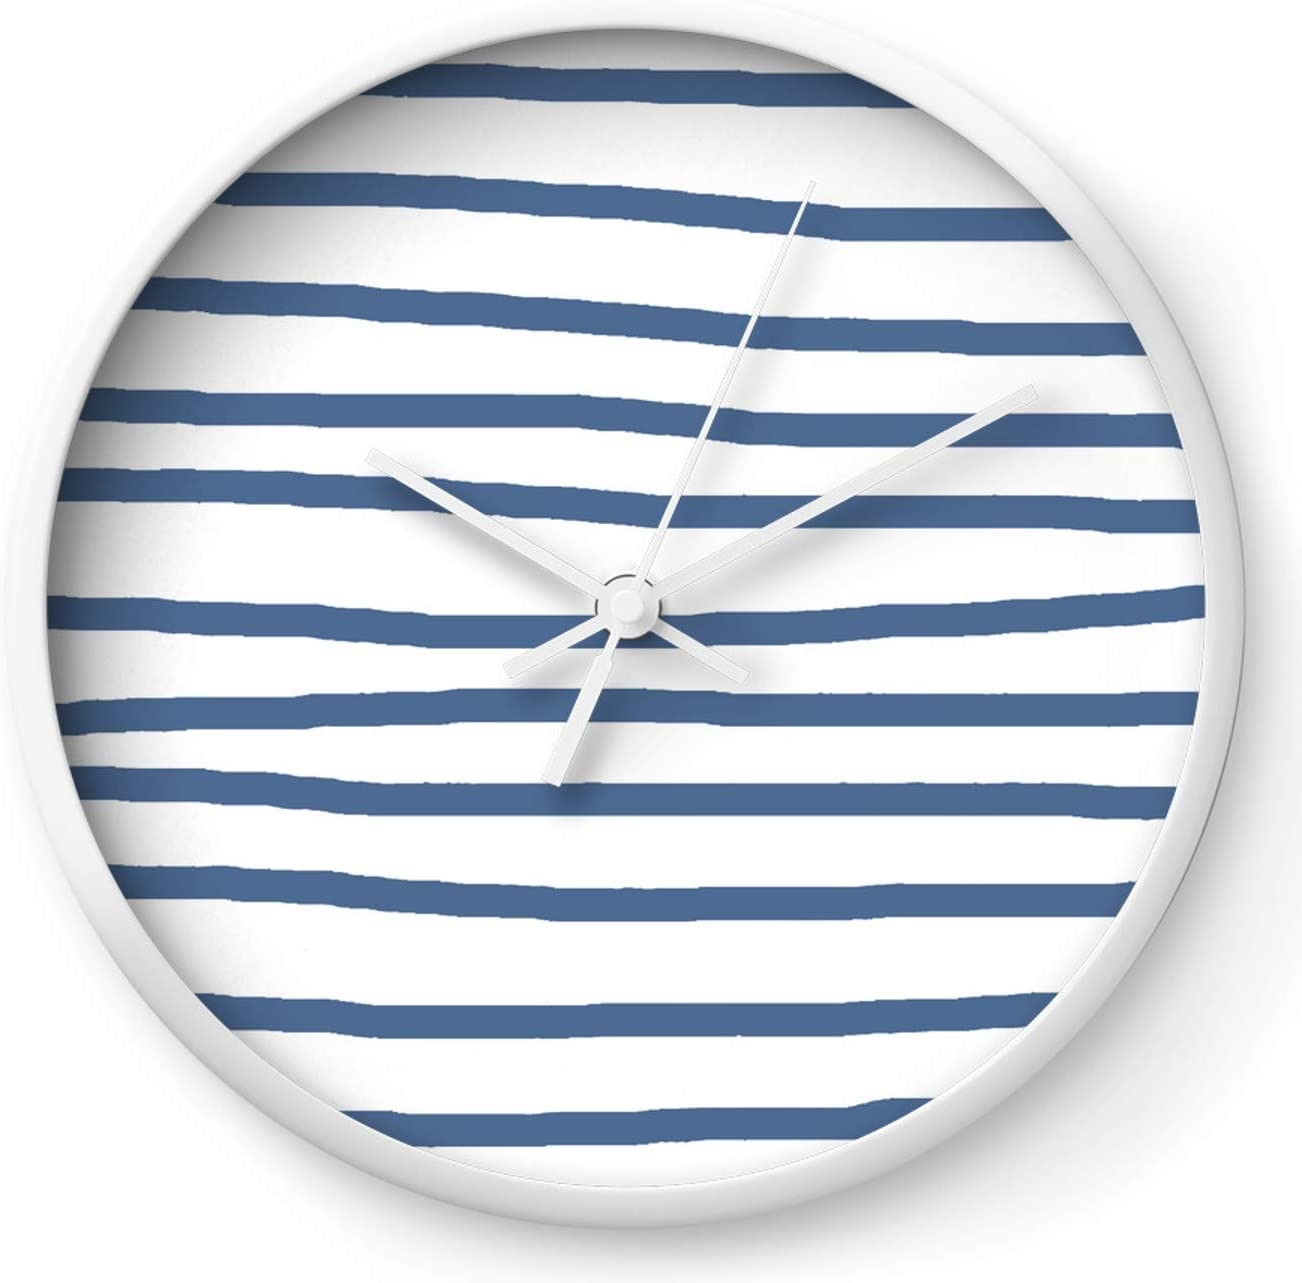 Simply Drawn Superior Stripes in Aegean Blue on and Award Simple White by Luxe